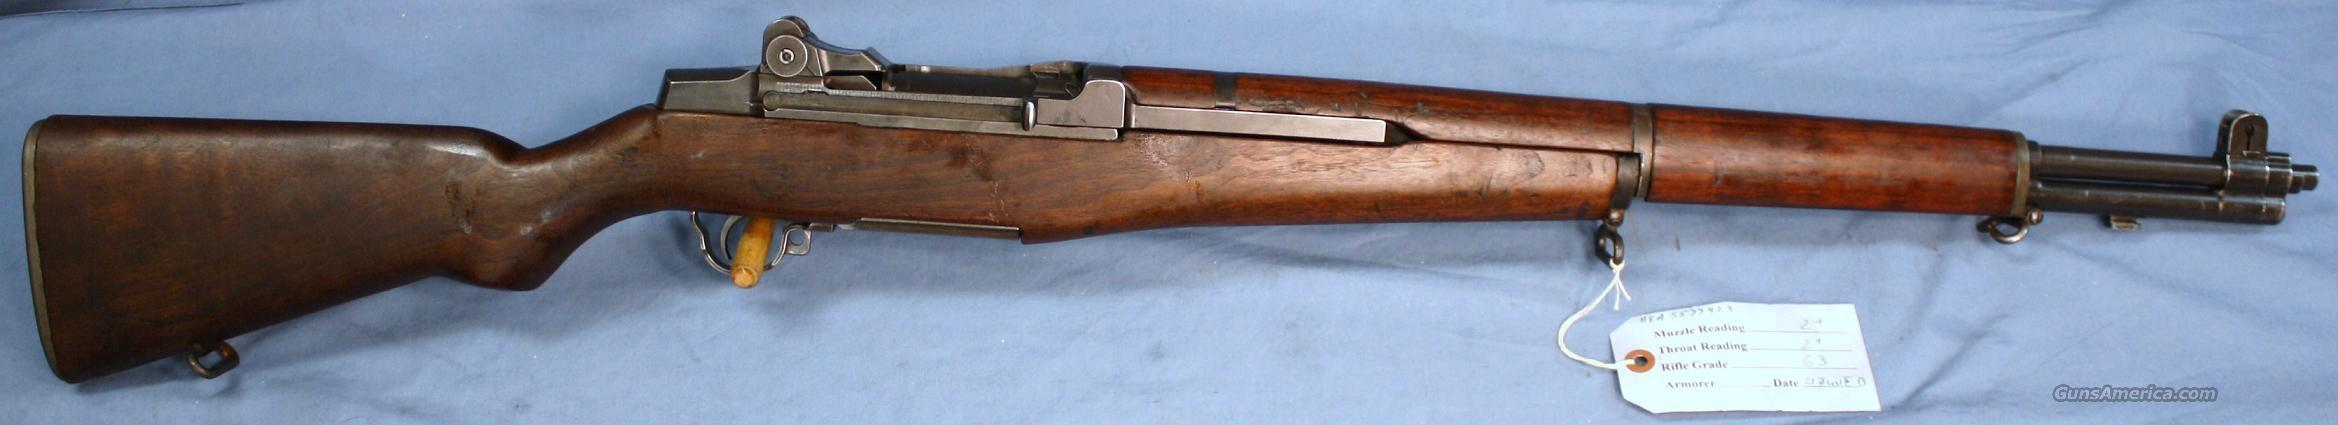 U.S. Army M1 Garand HRA Semi-Automatic Rifle .30-06  Guns > Rifles > Military Misc. Rifles US > M1 Garand